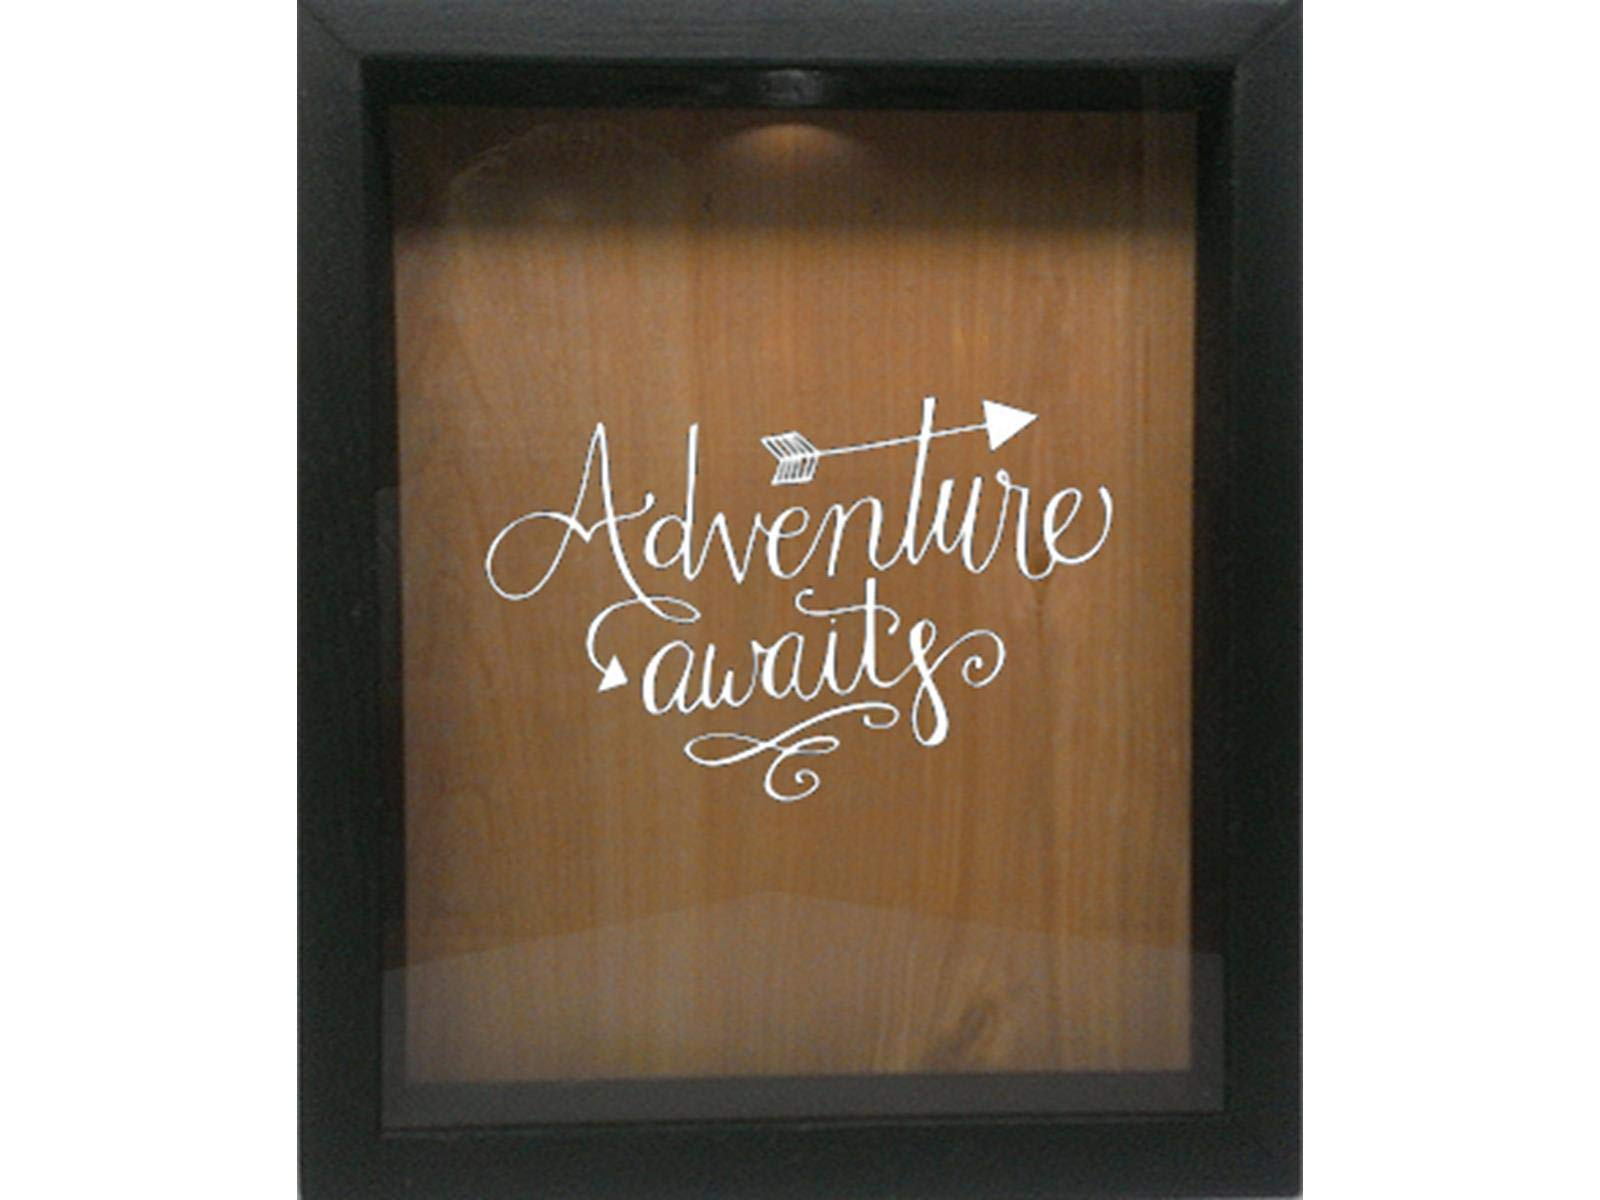 Wicked Good Decor Wooden Shadow Box Wine Cork/Bottle Cap/Tickets 9x11 - Adventure Awaits (Ebony w/White)